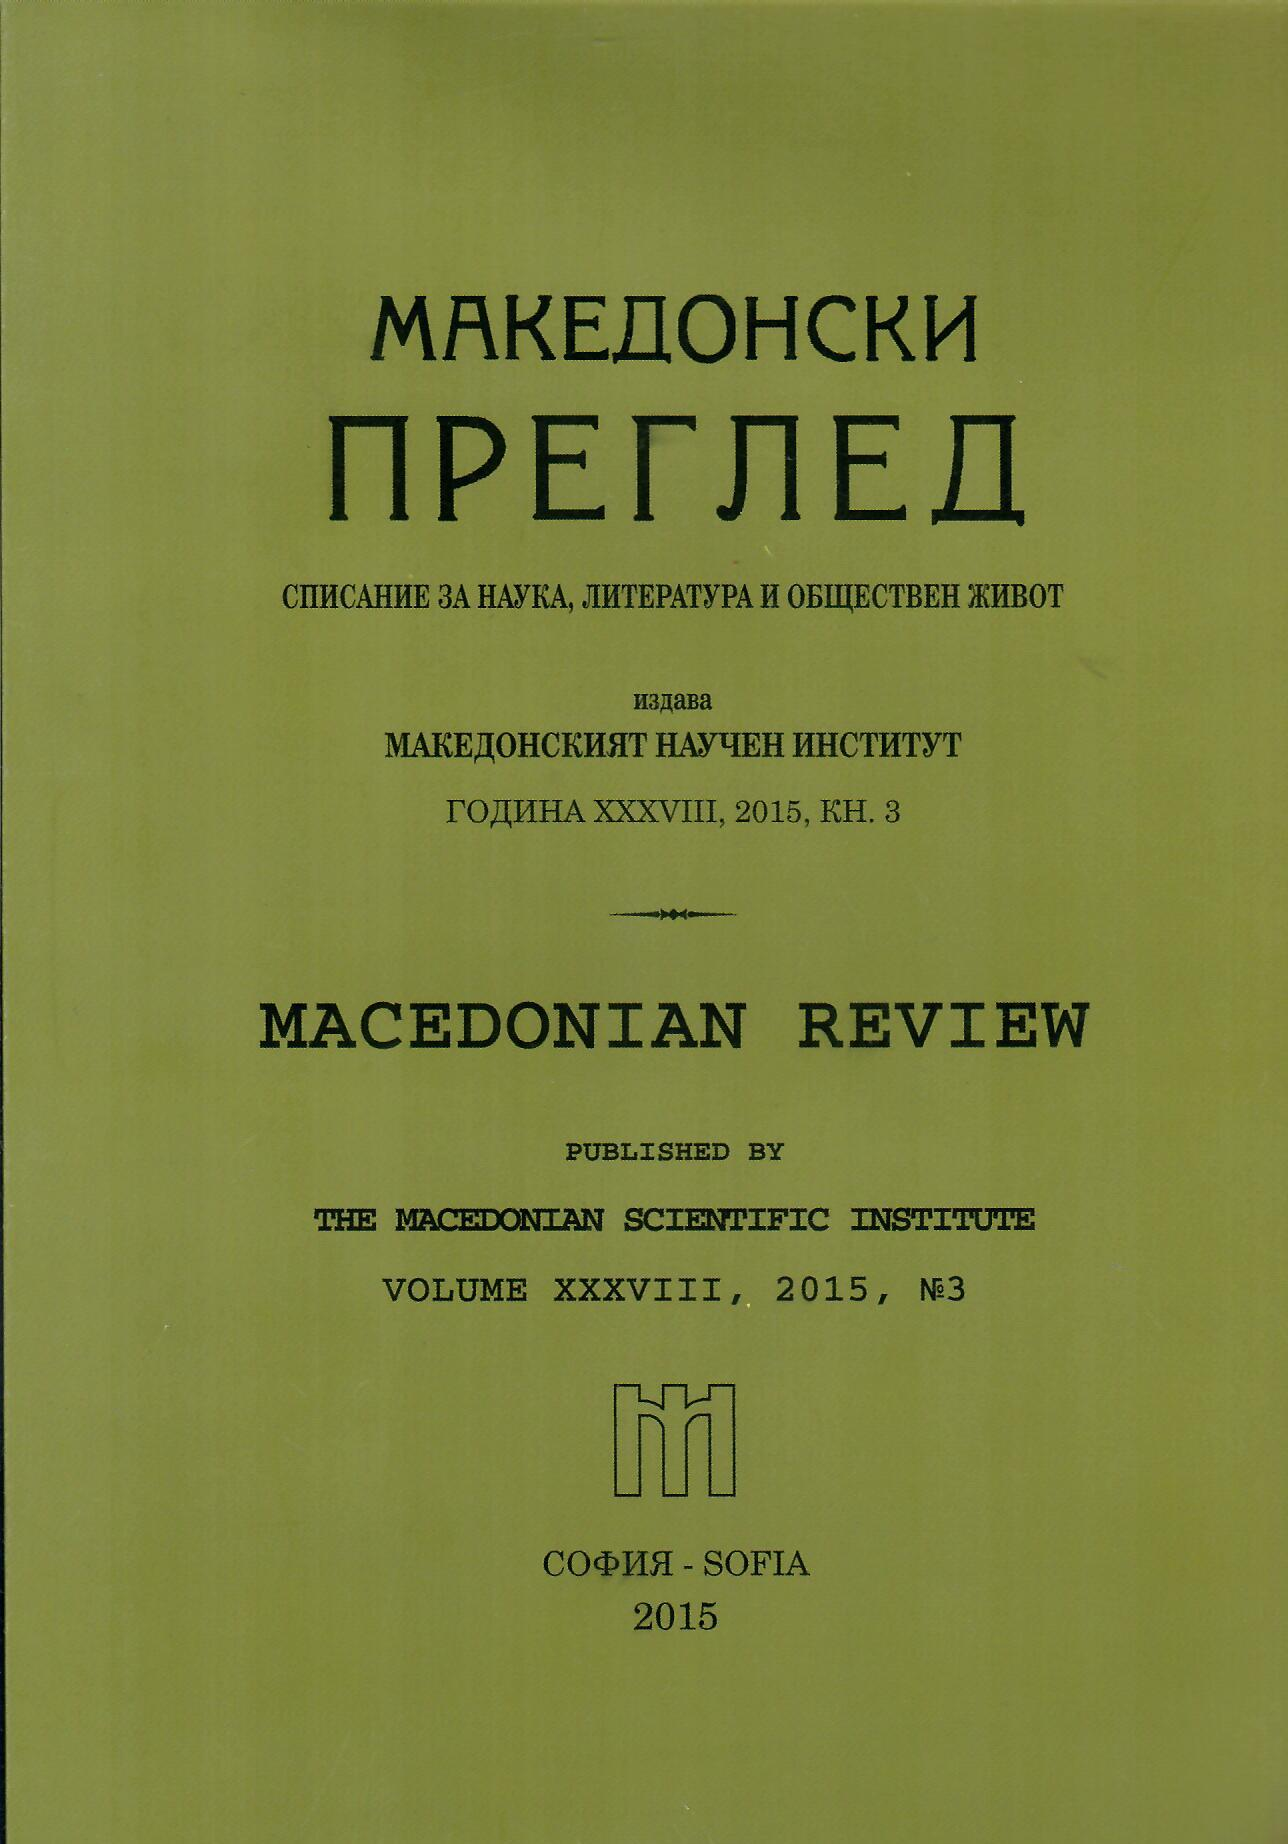 1895 Revolutionary Action in Macedonia Cover Image